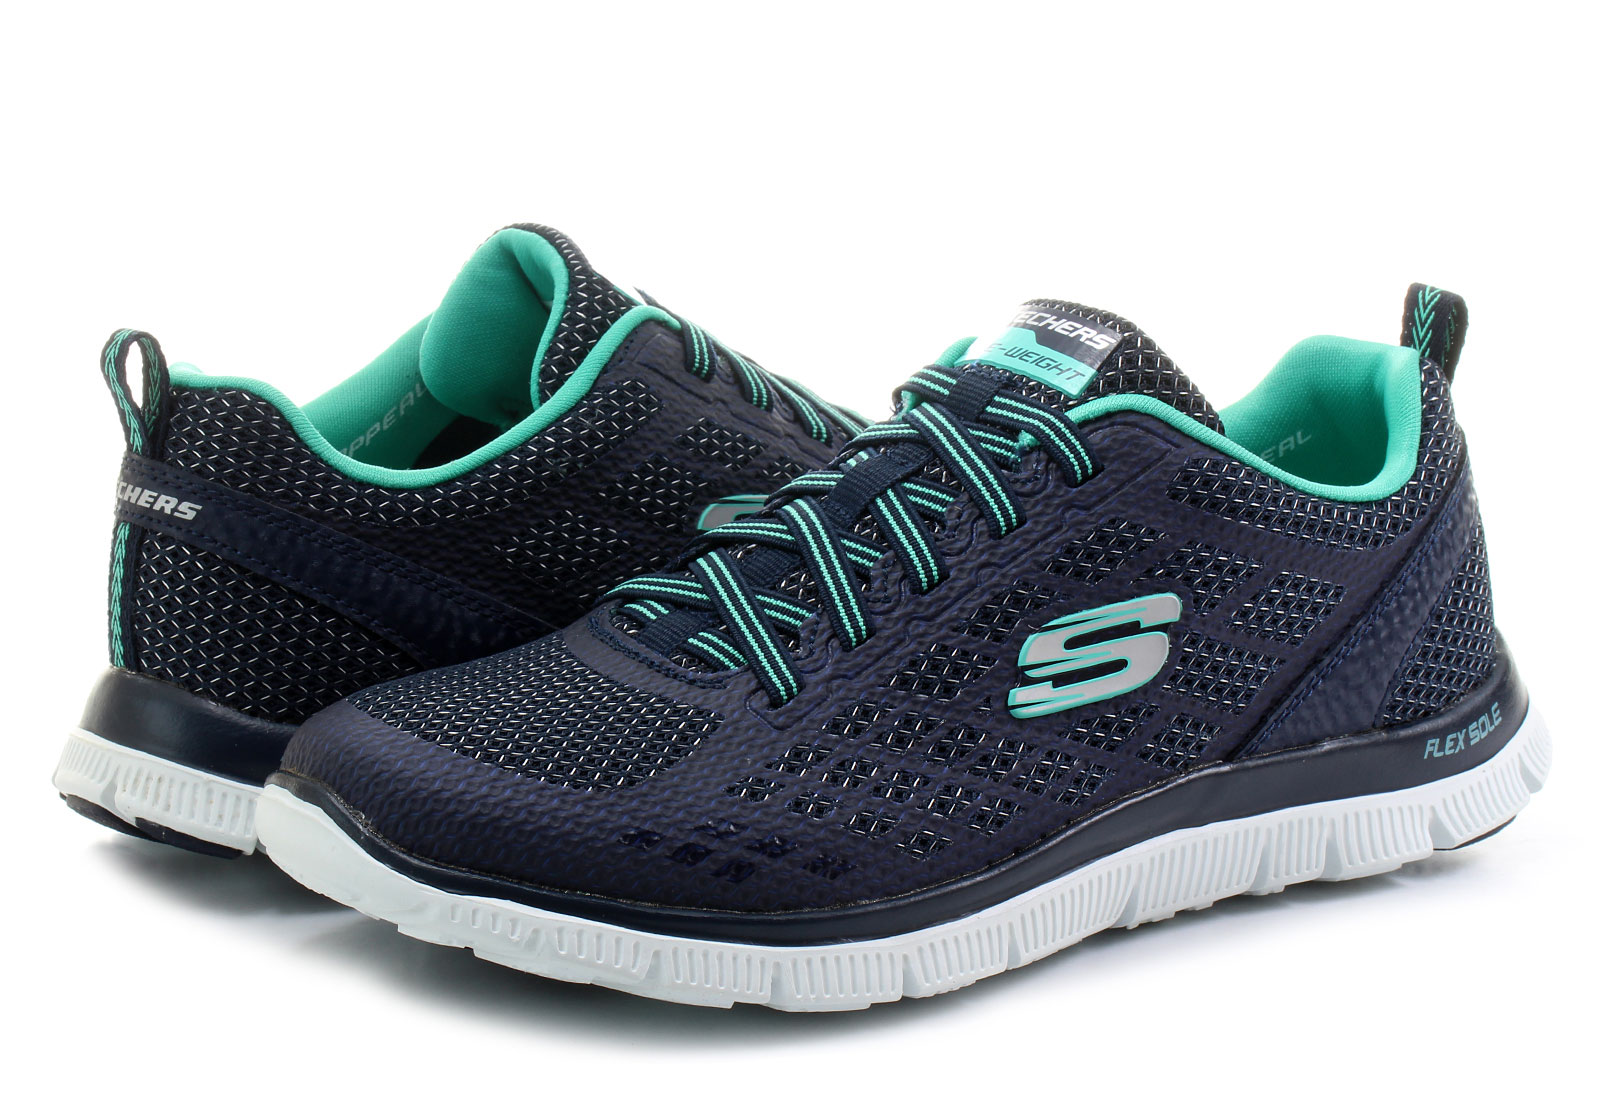 Skechers Shoes - Arctic Chill - 12454-nvaq